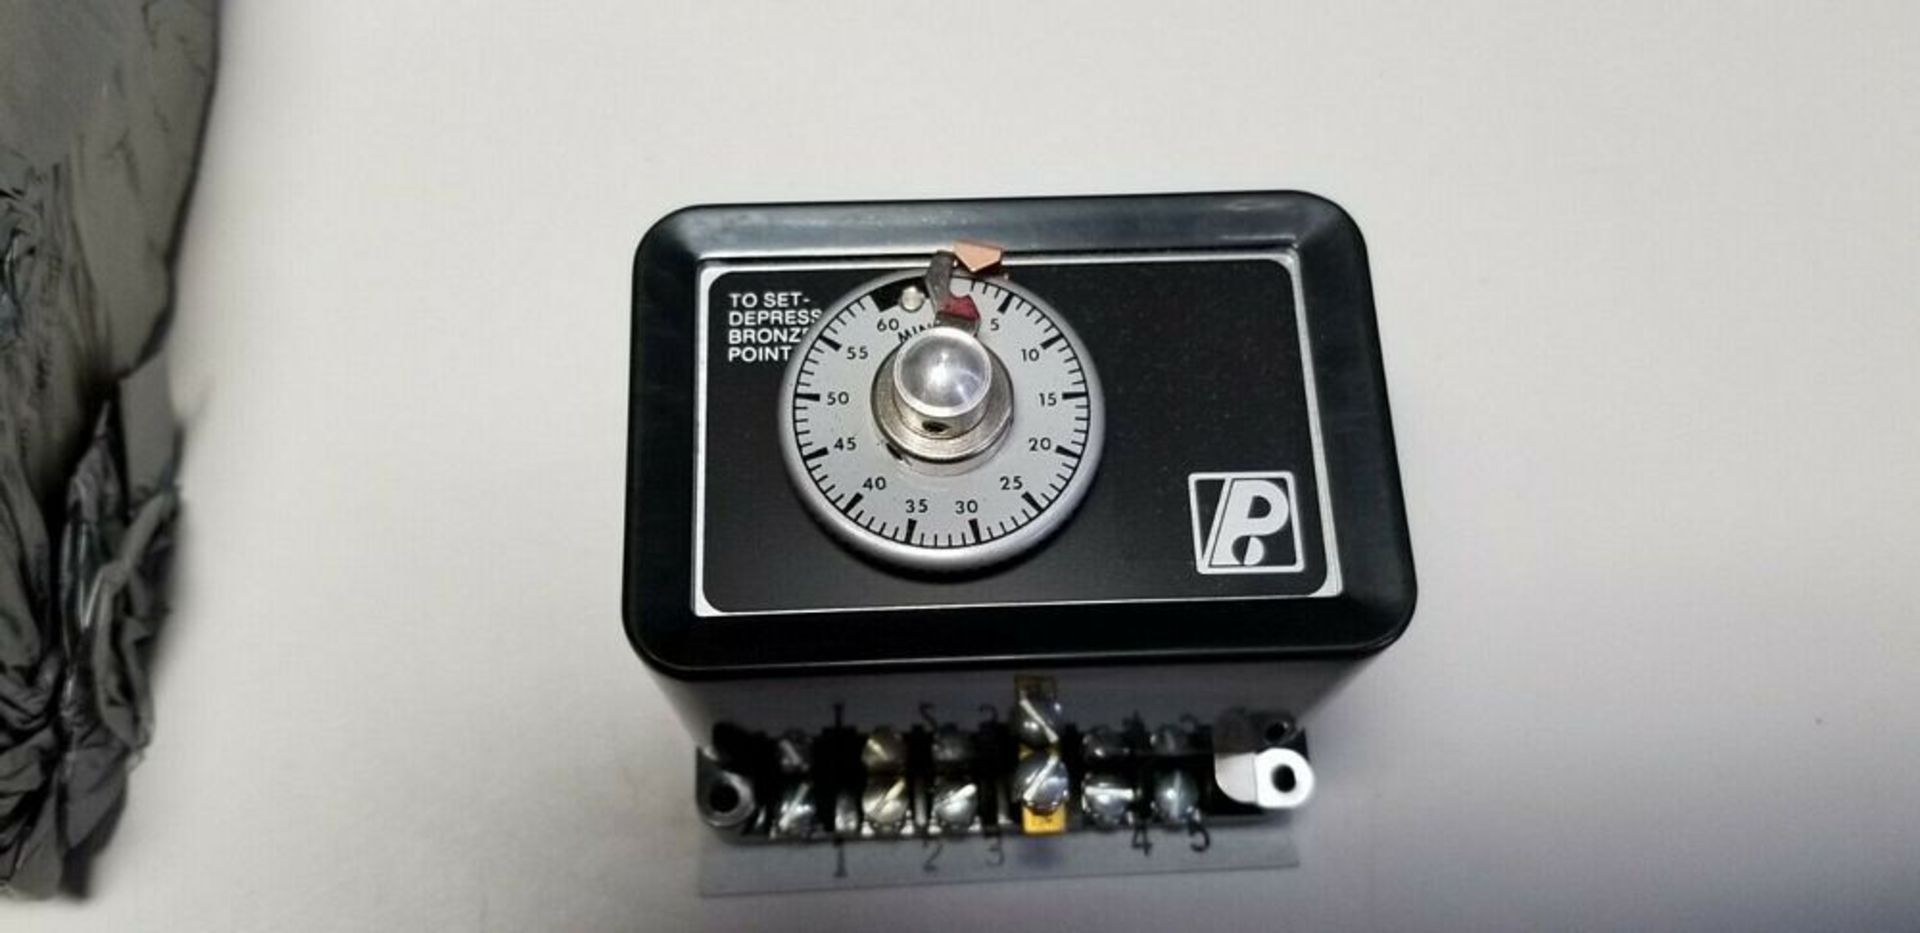 NEW PARAGON TIMING MOTOR & CLUTCH AUTOMATIC RESET CONTROL - Image 5 of 6